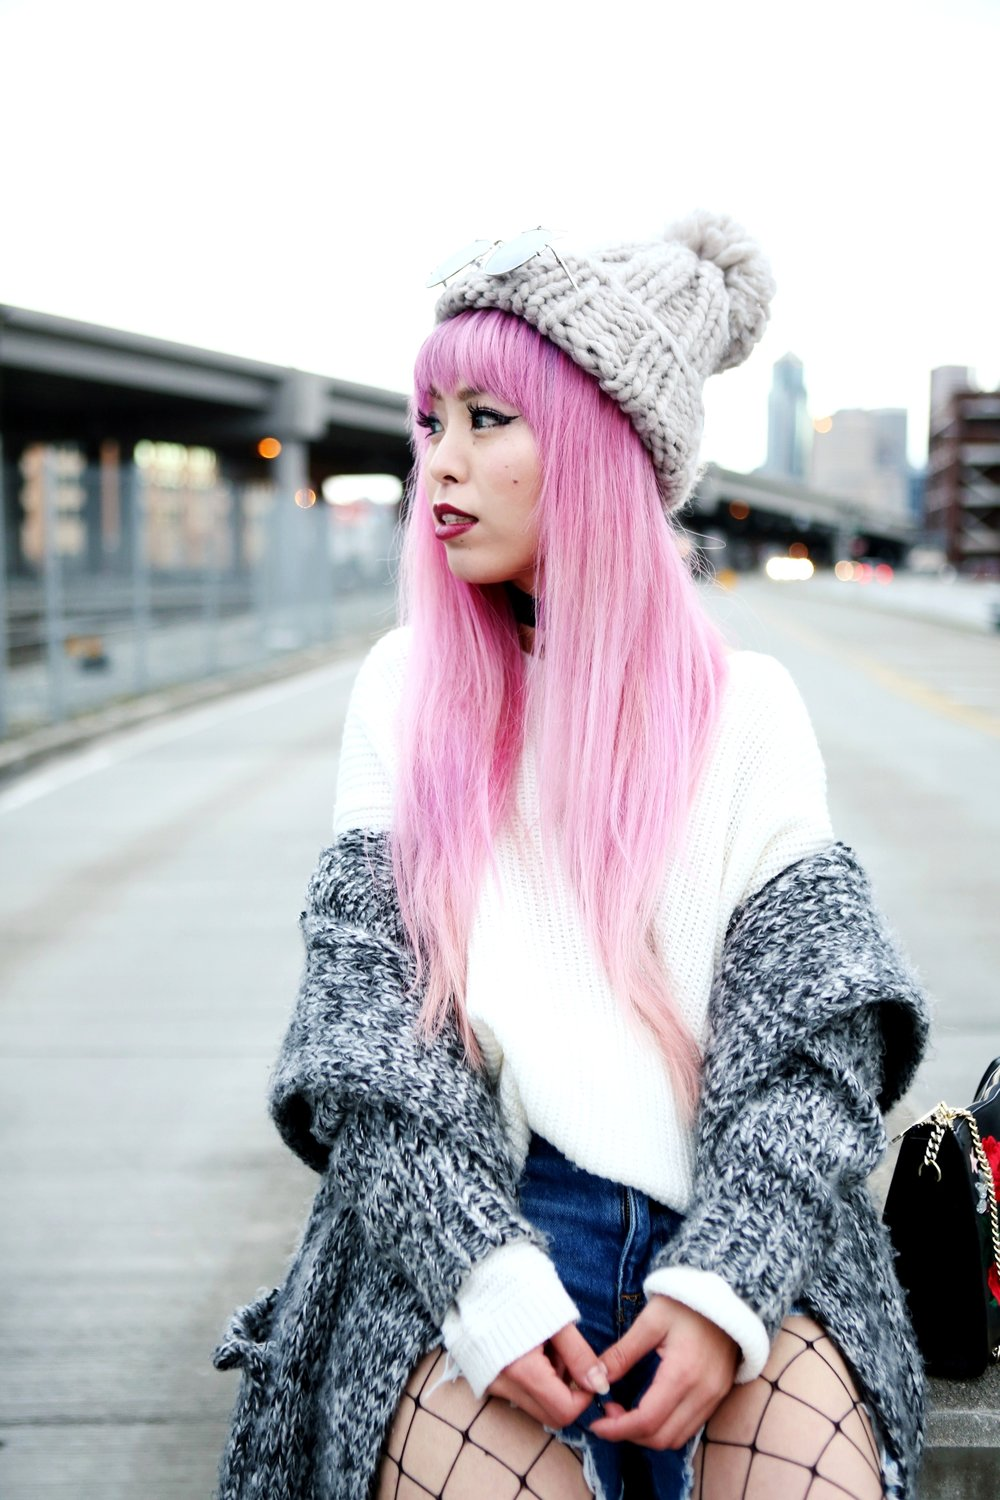 Asos Pom Pom Chunky Beanie_Forever 21 Sweater & Distressed Boyfriend Jeans_ASOS Fishnet Tights_Zara Star Velvet Chocker & Black Lace Up Boots_Gray Chunky Long Cardigan_Free People Mirrored Sunglasses_Pink Hair_Seattle Fashion Style Blogger_Japanese-Aika's Love Closet 6